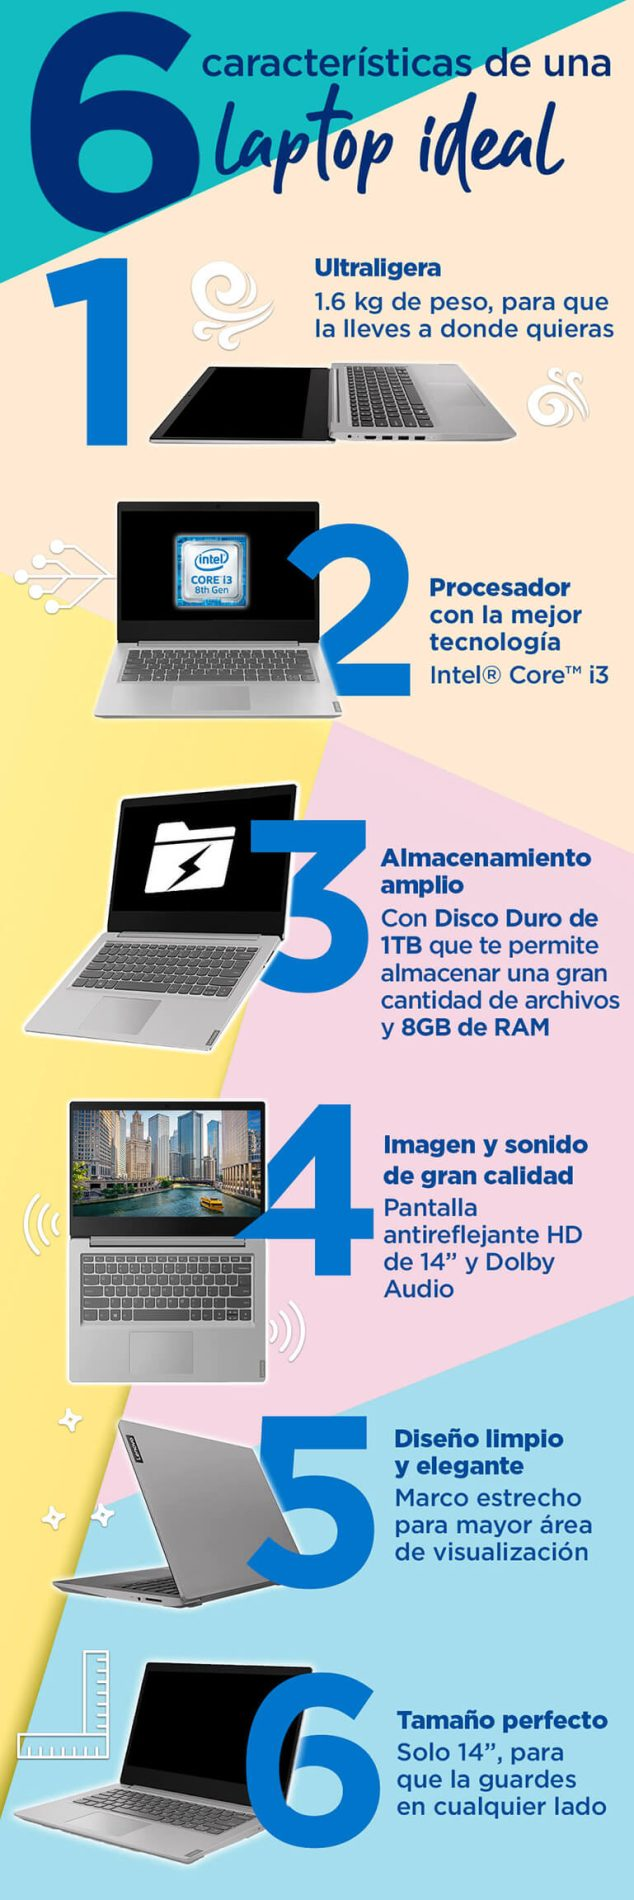 6 características de una laptop ideal